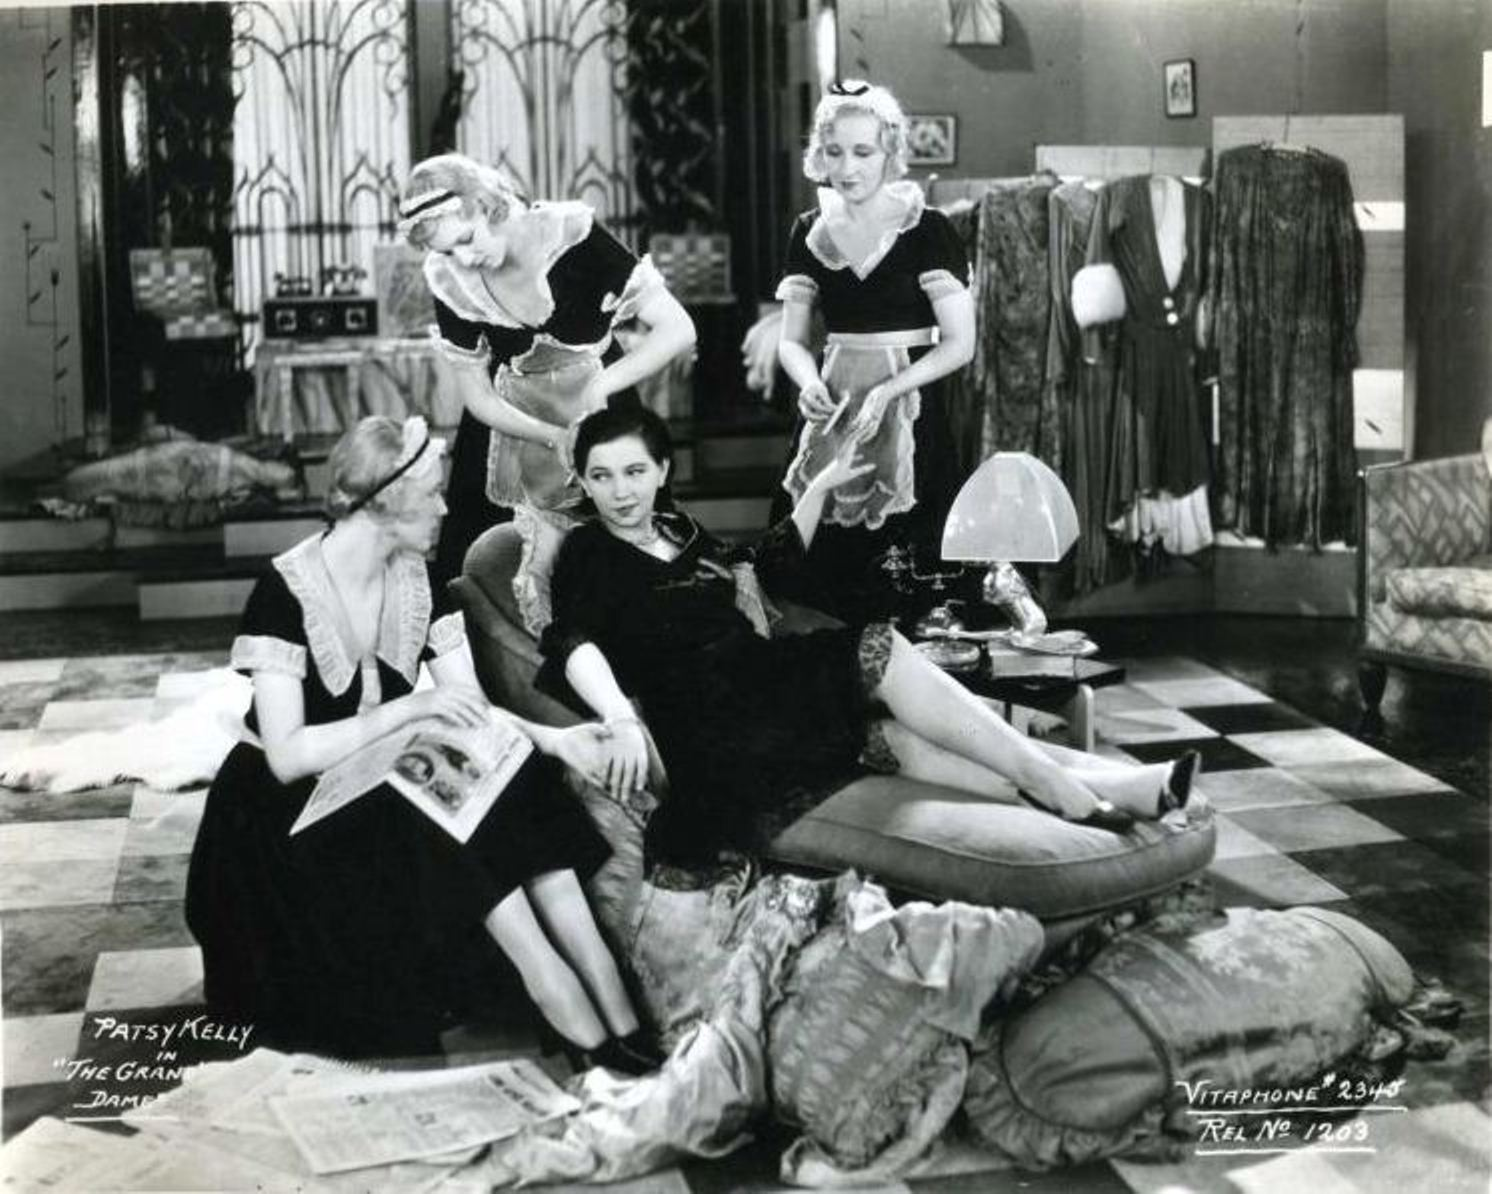 Patsy Kelly in The Grand Dame